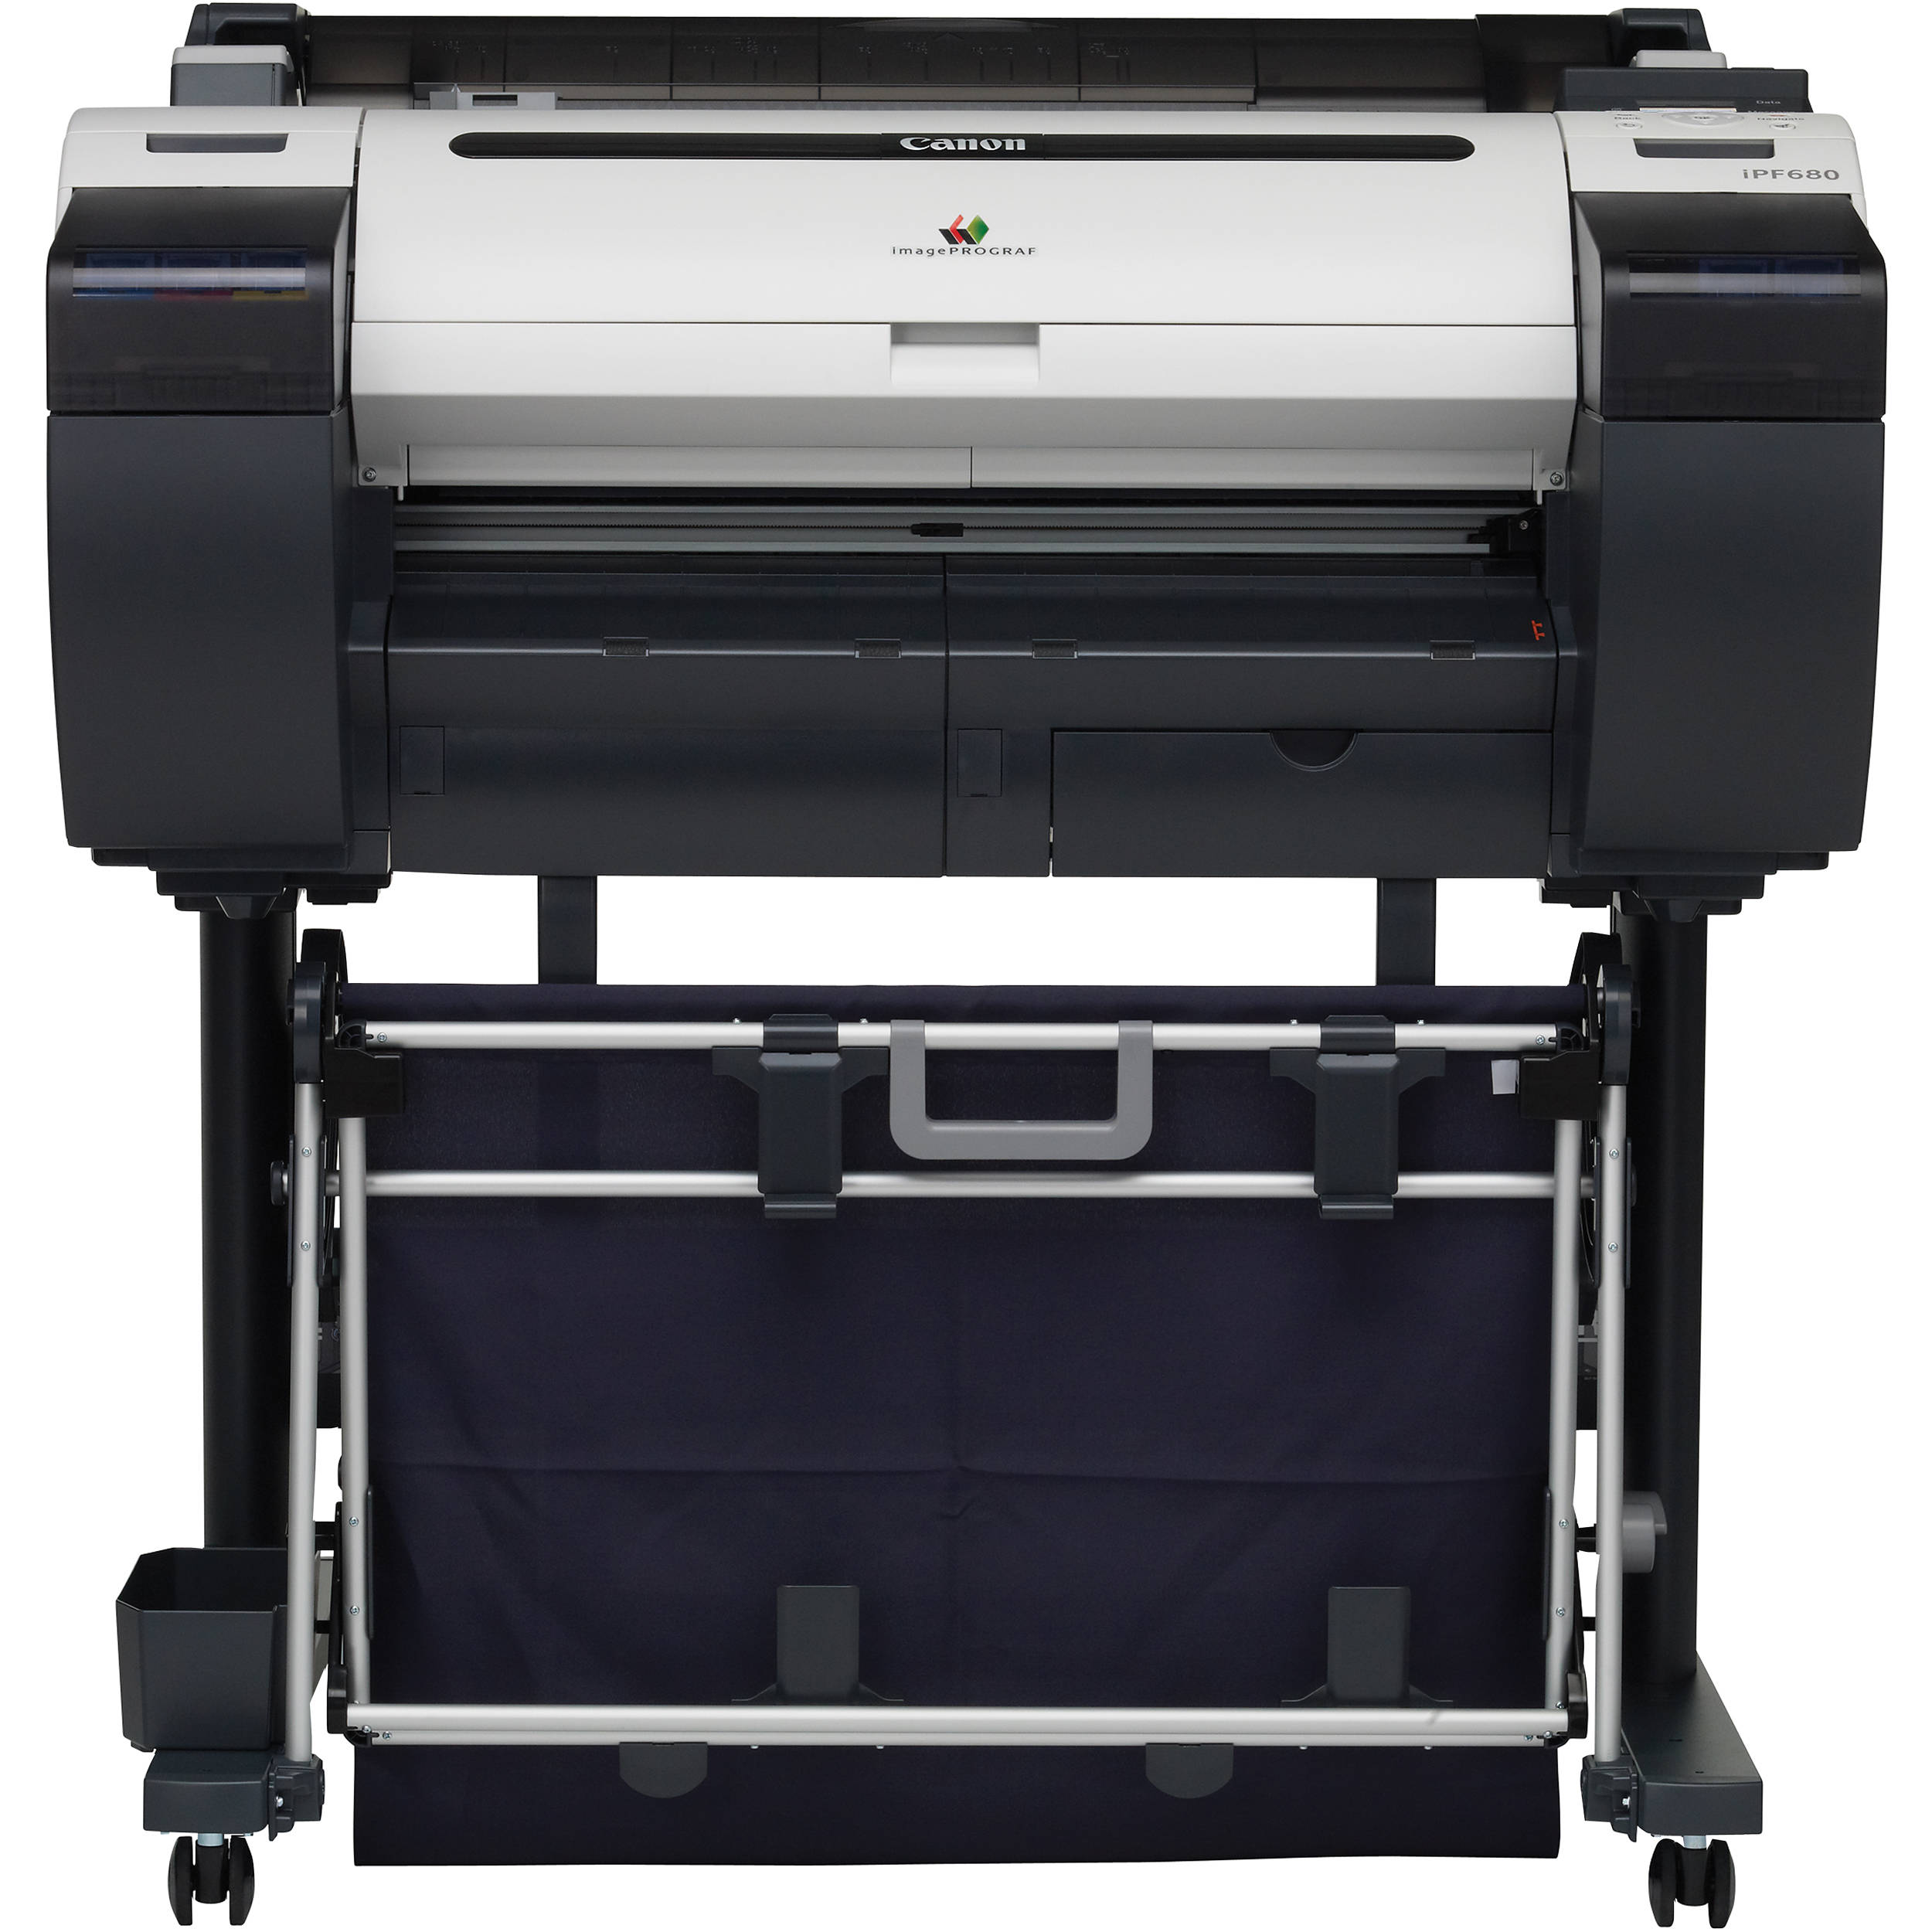 Canon Imageprograf Ipf680 Springfield Blue Print Plotter Hp Designjet T520 24 Inch